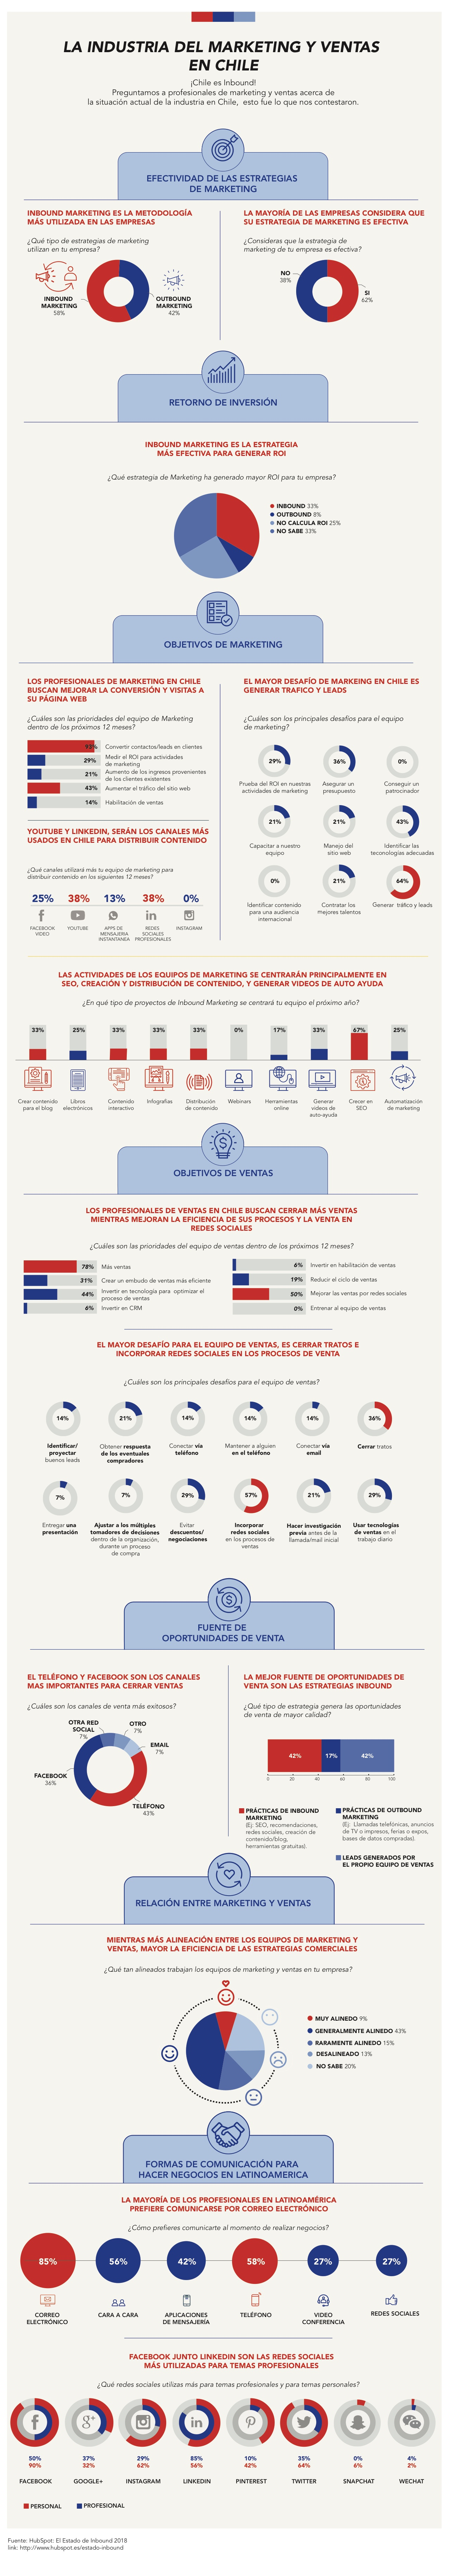 Industria de Marketing y Ventas enChile  2018-3